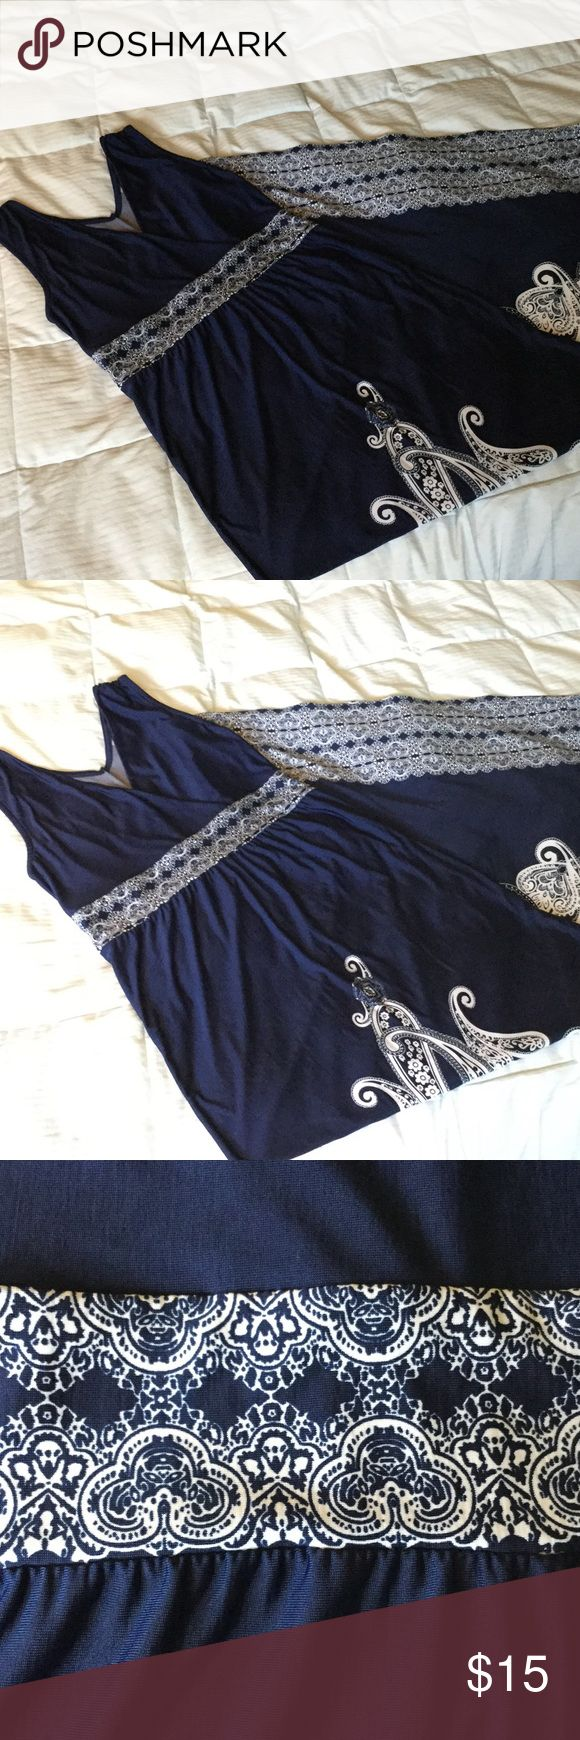 """Maxi Dress Navy blue and white maxi dress. Length will fit person 5'4"""" or taller, but could easily be hemmed. Lightweight and has a nice bit of stretch. Empire waist. Just Love Dresses Maxi"""